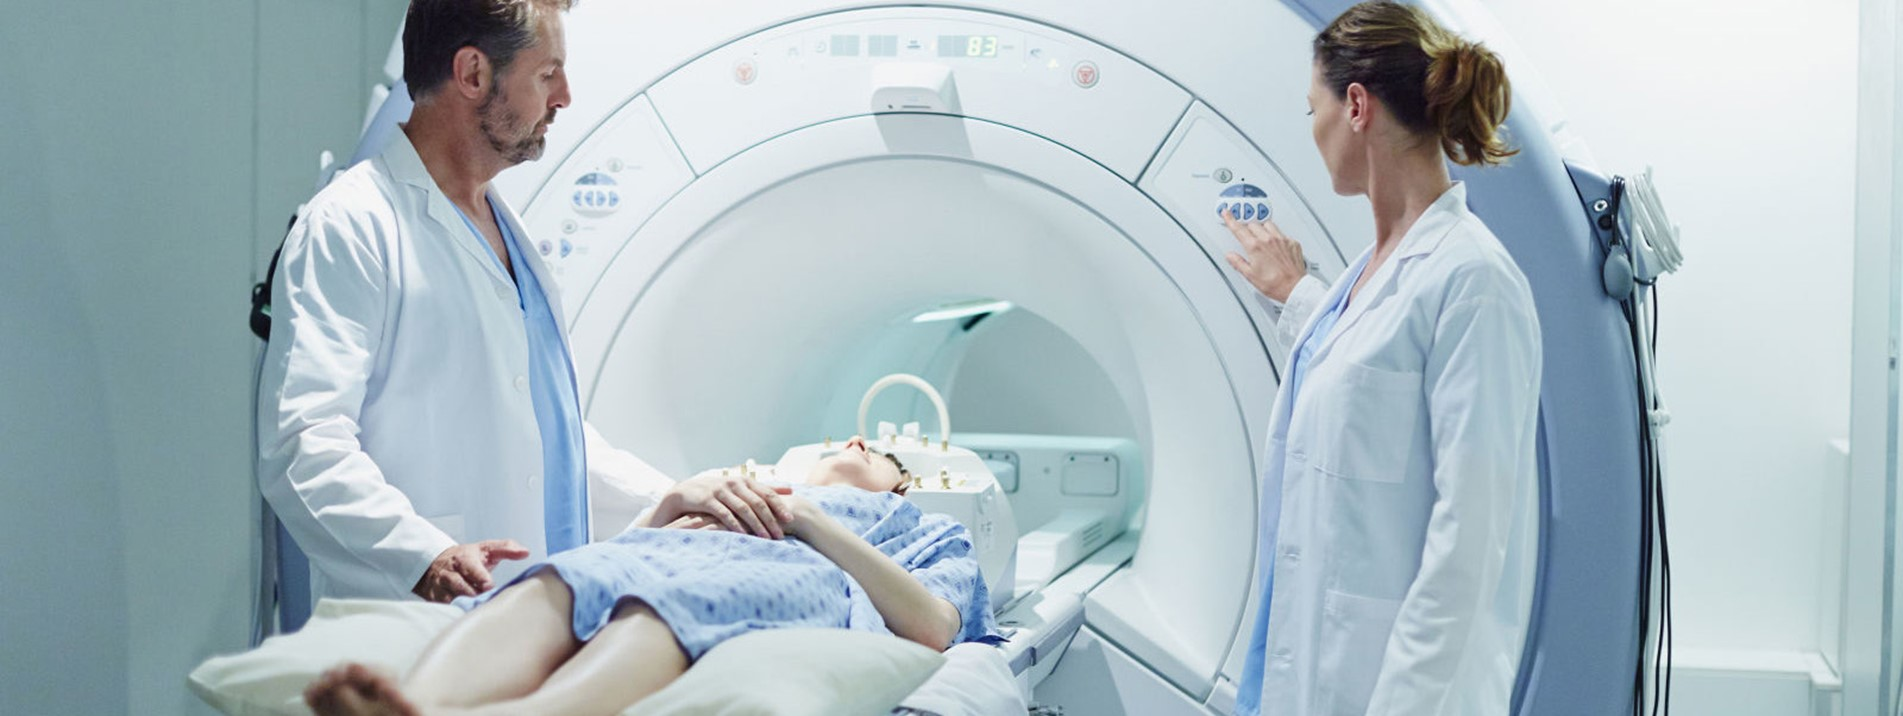 Medical MRI scanning equipment for lease or rent